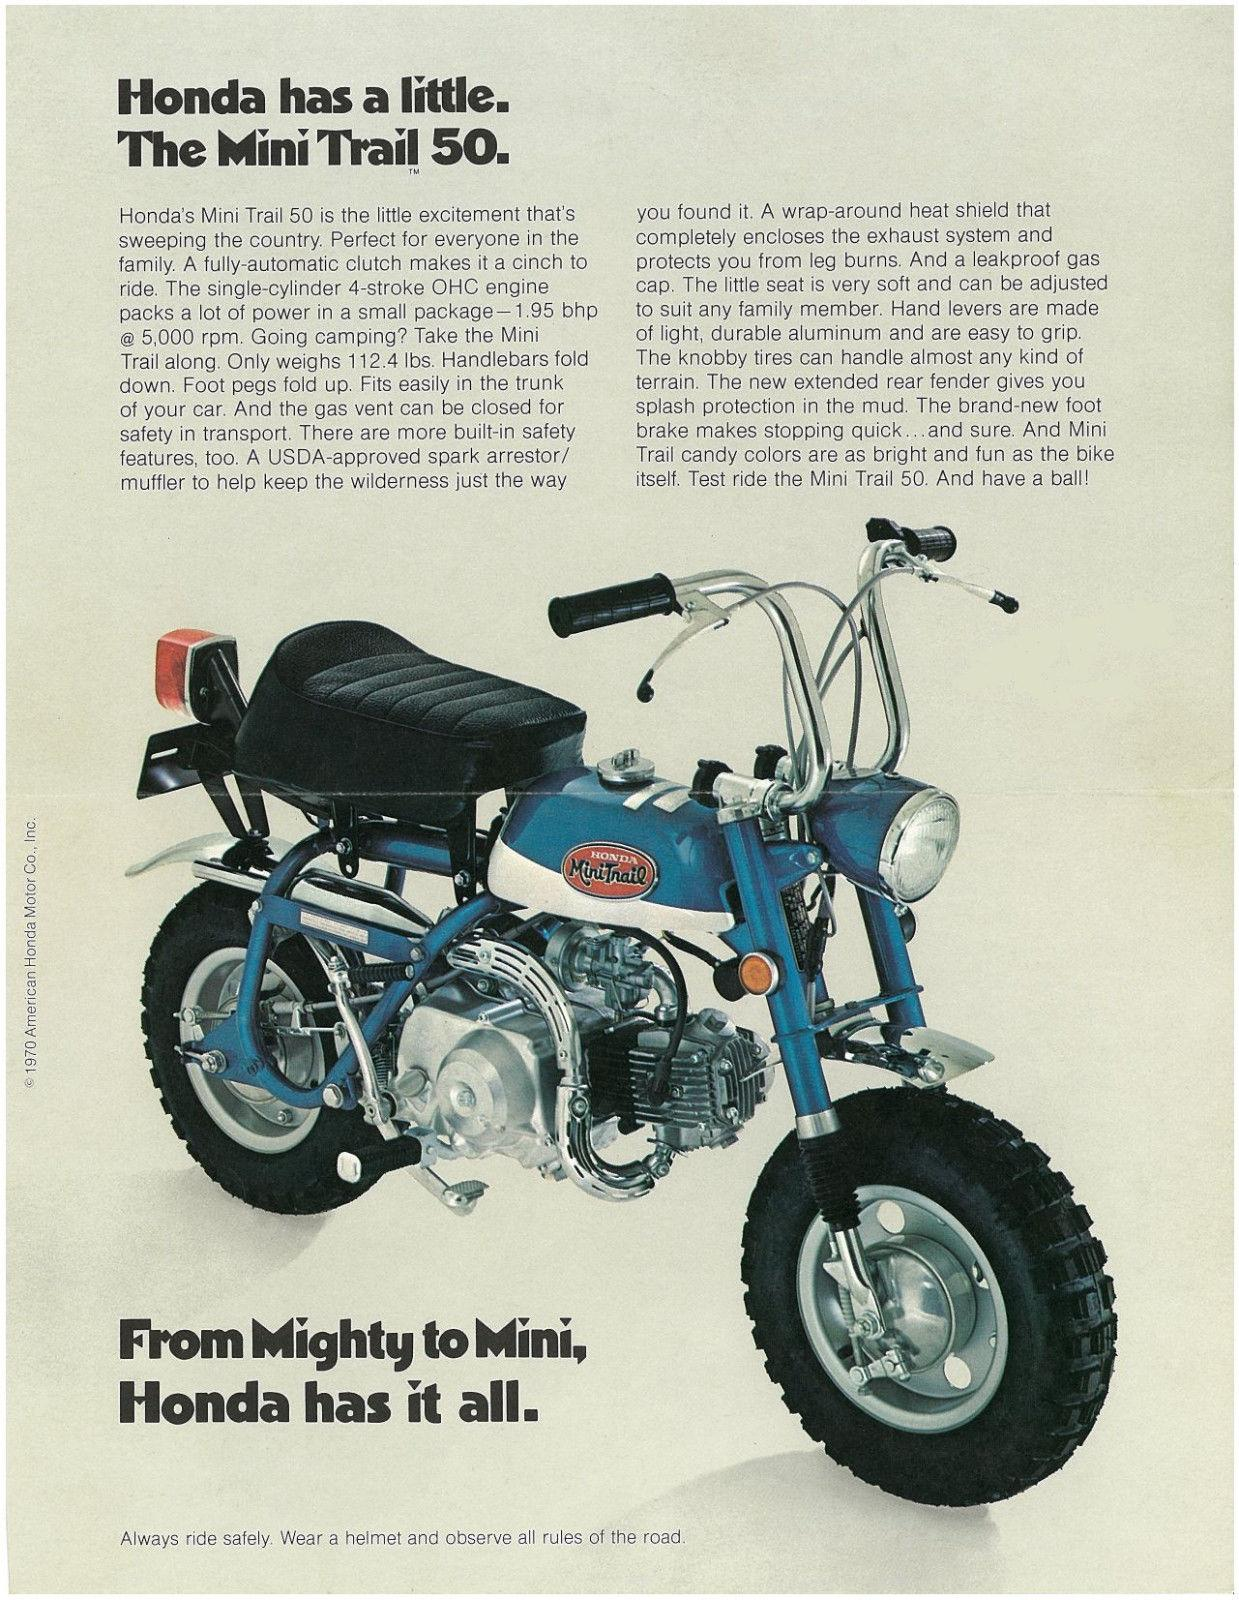 """Followed by the last two years of the hard-tail model """"Honda Mini-Trail  Z50-K2"""" series (1970-71) From Mighty To Mini, Honda Has It All - Honda Has  A Little."""